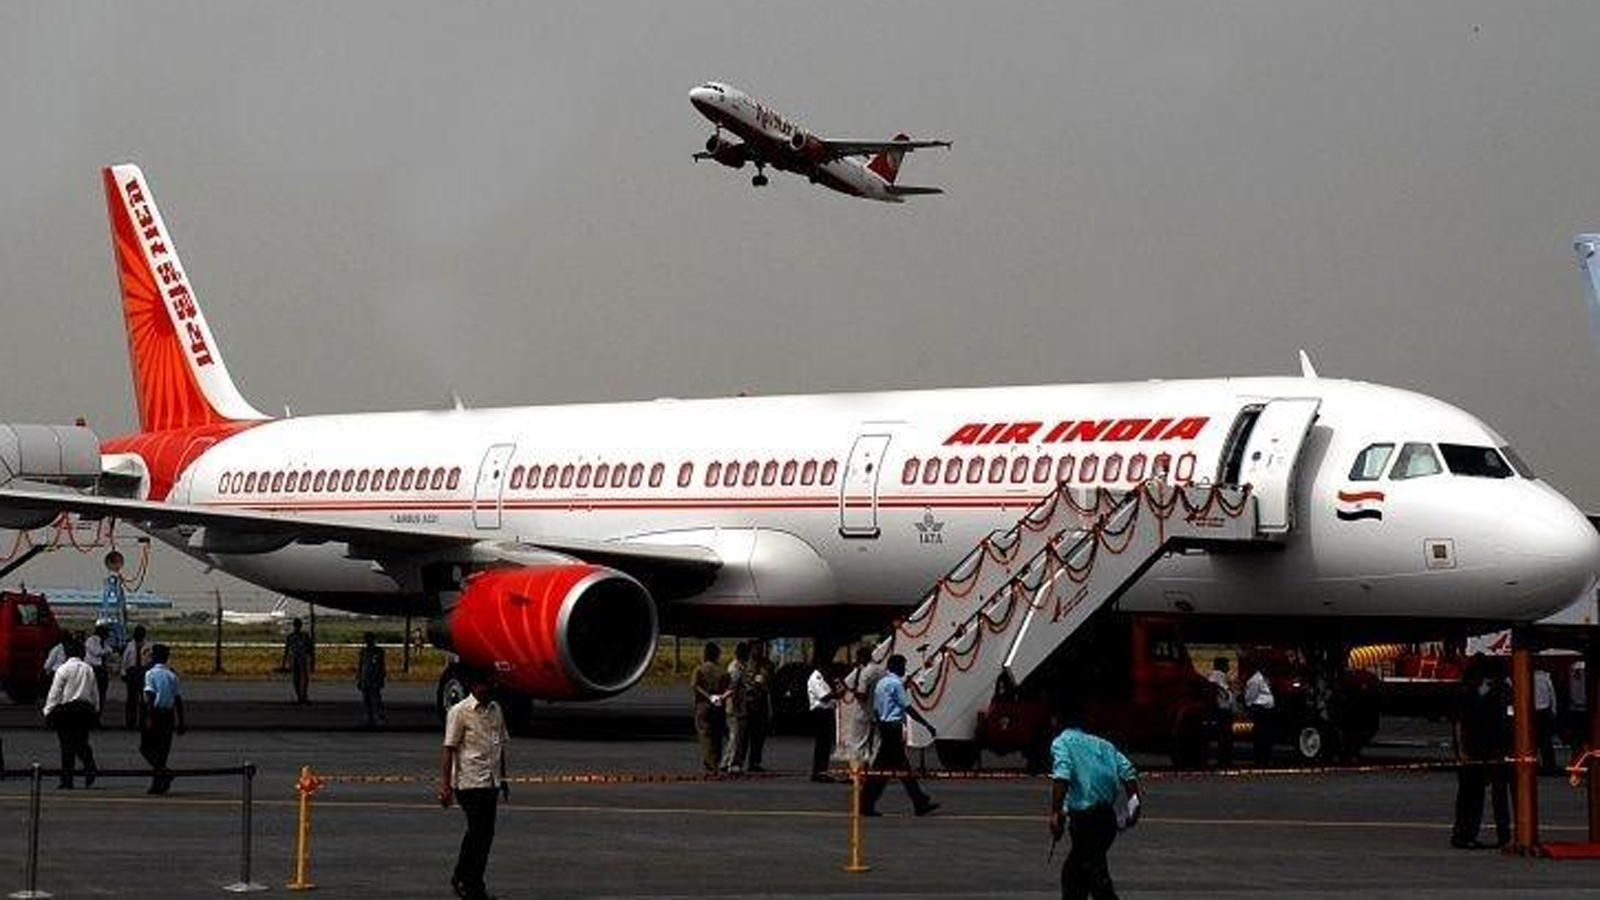 covid-19-air-india-suspends-pilots-amid-coronavirus-lockdown